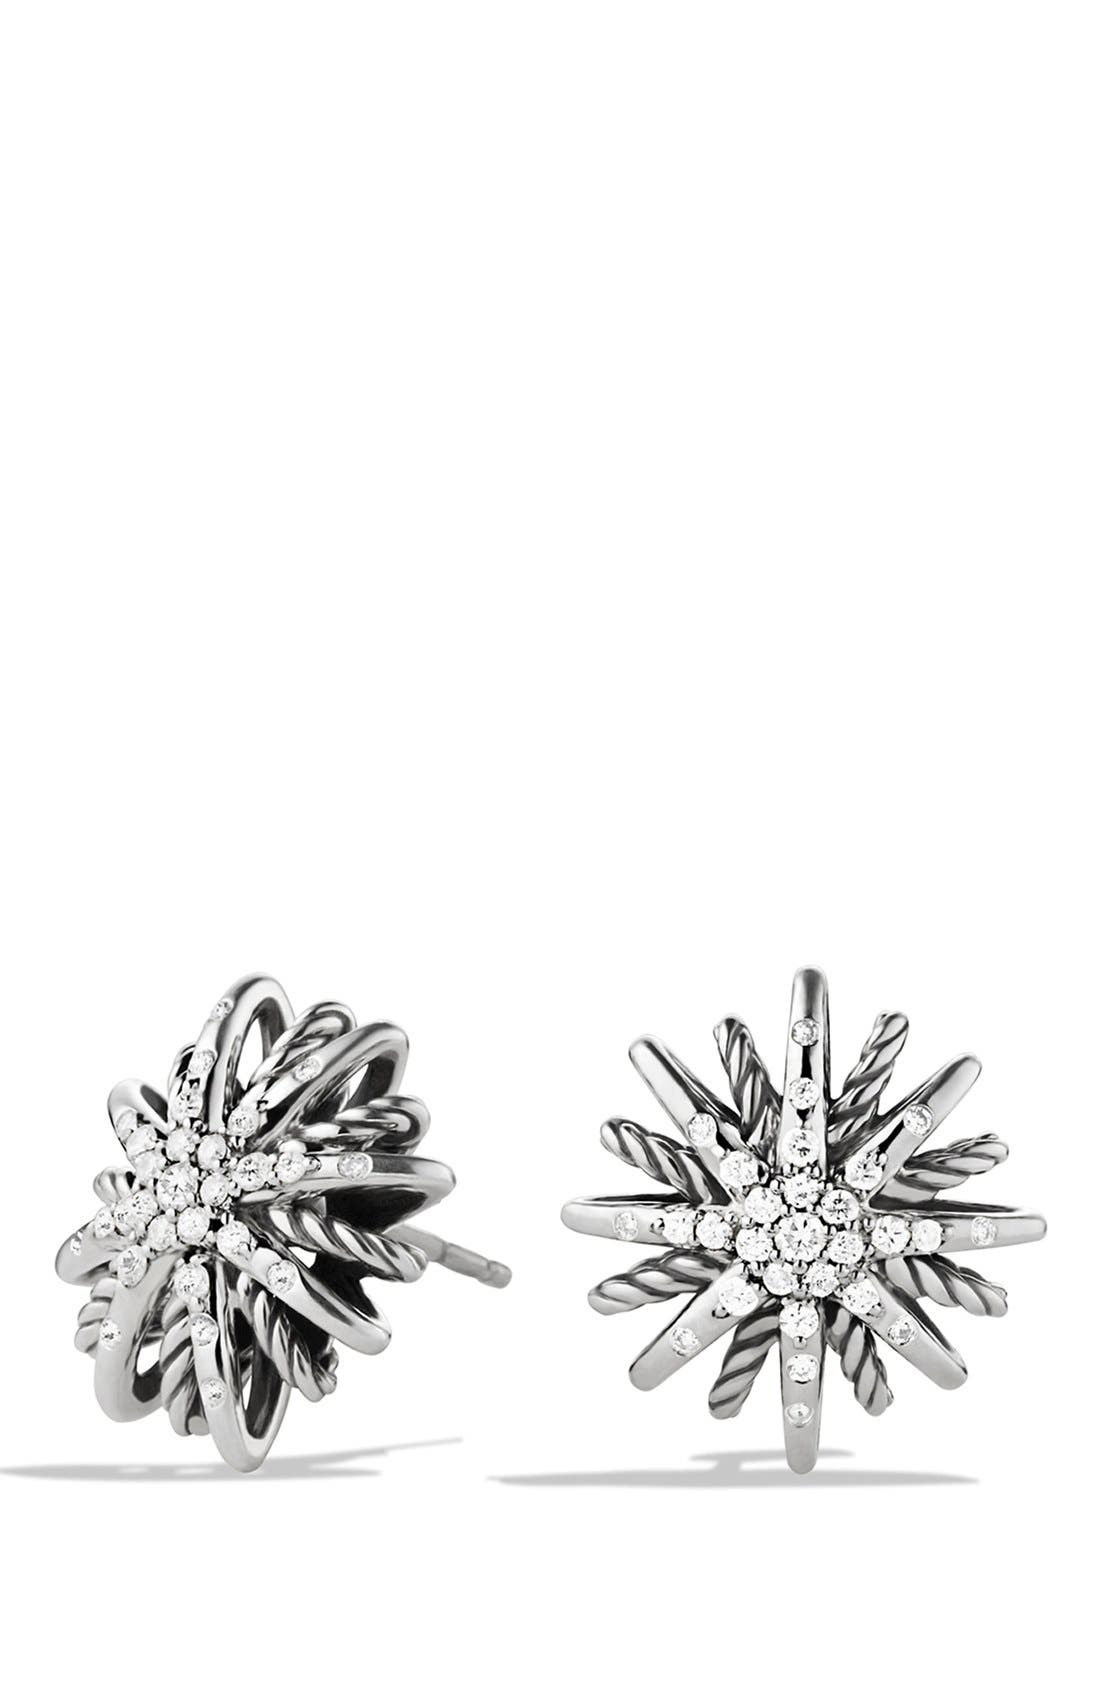 David Yurman 'Starburst' Small Earrings with Diamonds